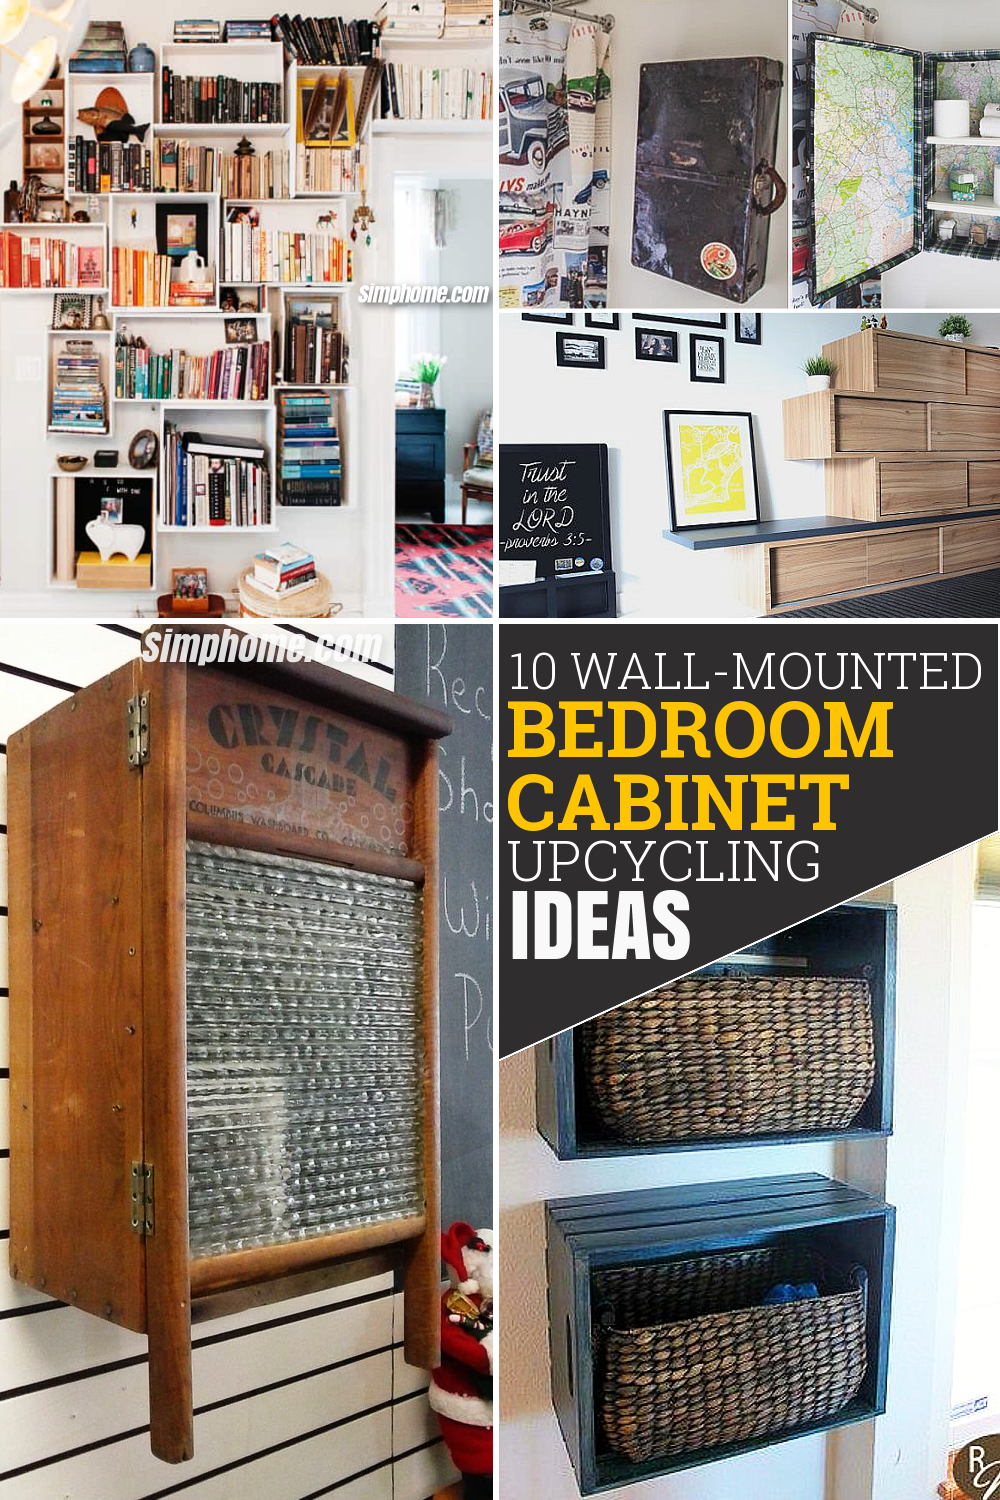 10 Wall Mounted Bedroom Cabinet Upcycling Ideas via Simphome com Pinterest featured Image